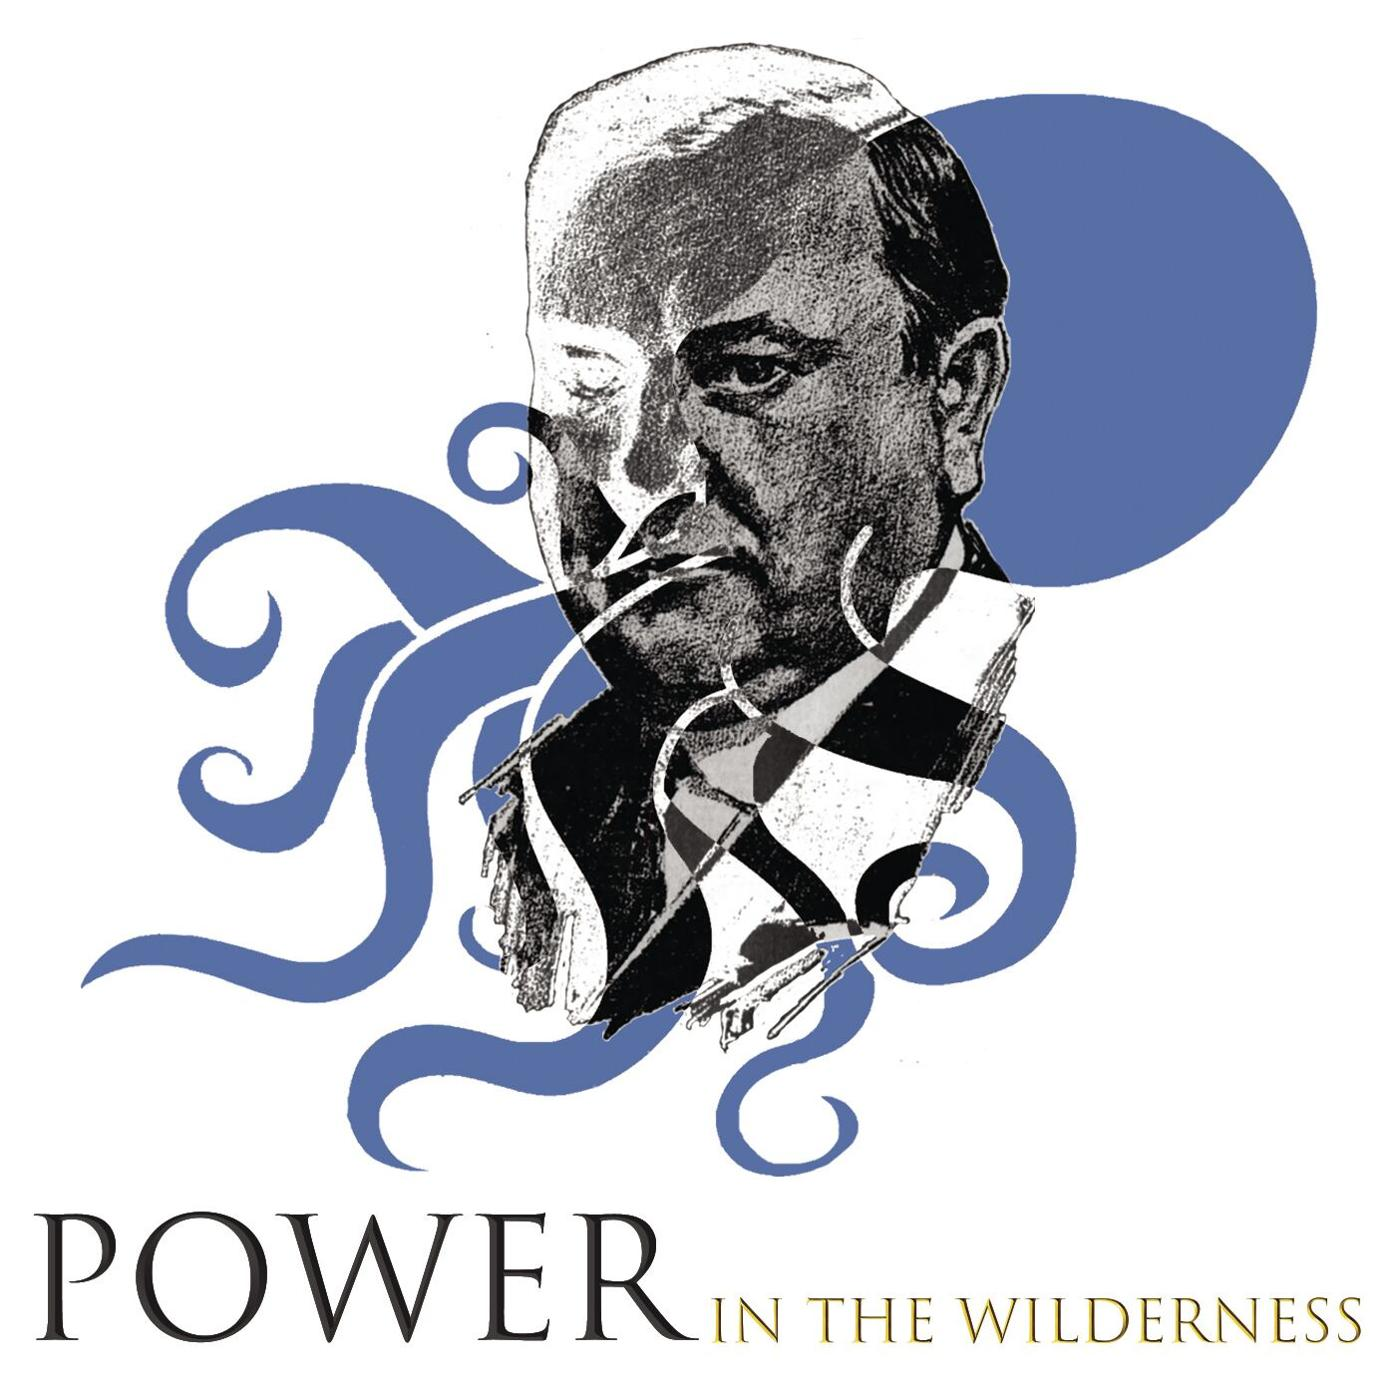 Power in the Wilderness takes an unfiltered approach through the story of Victor Power